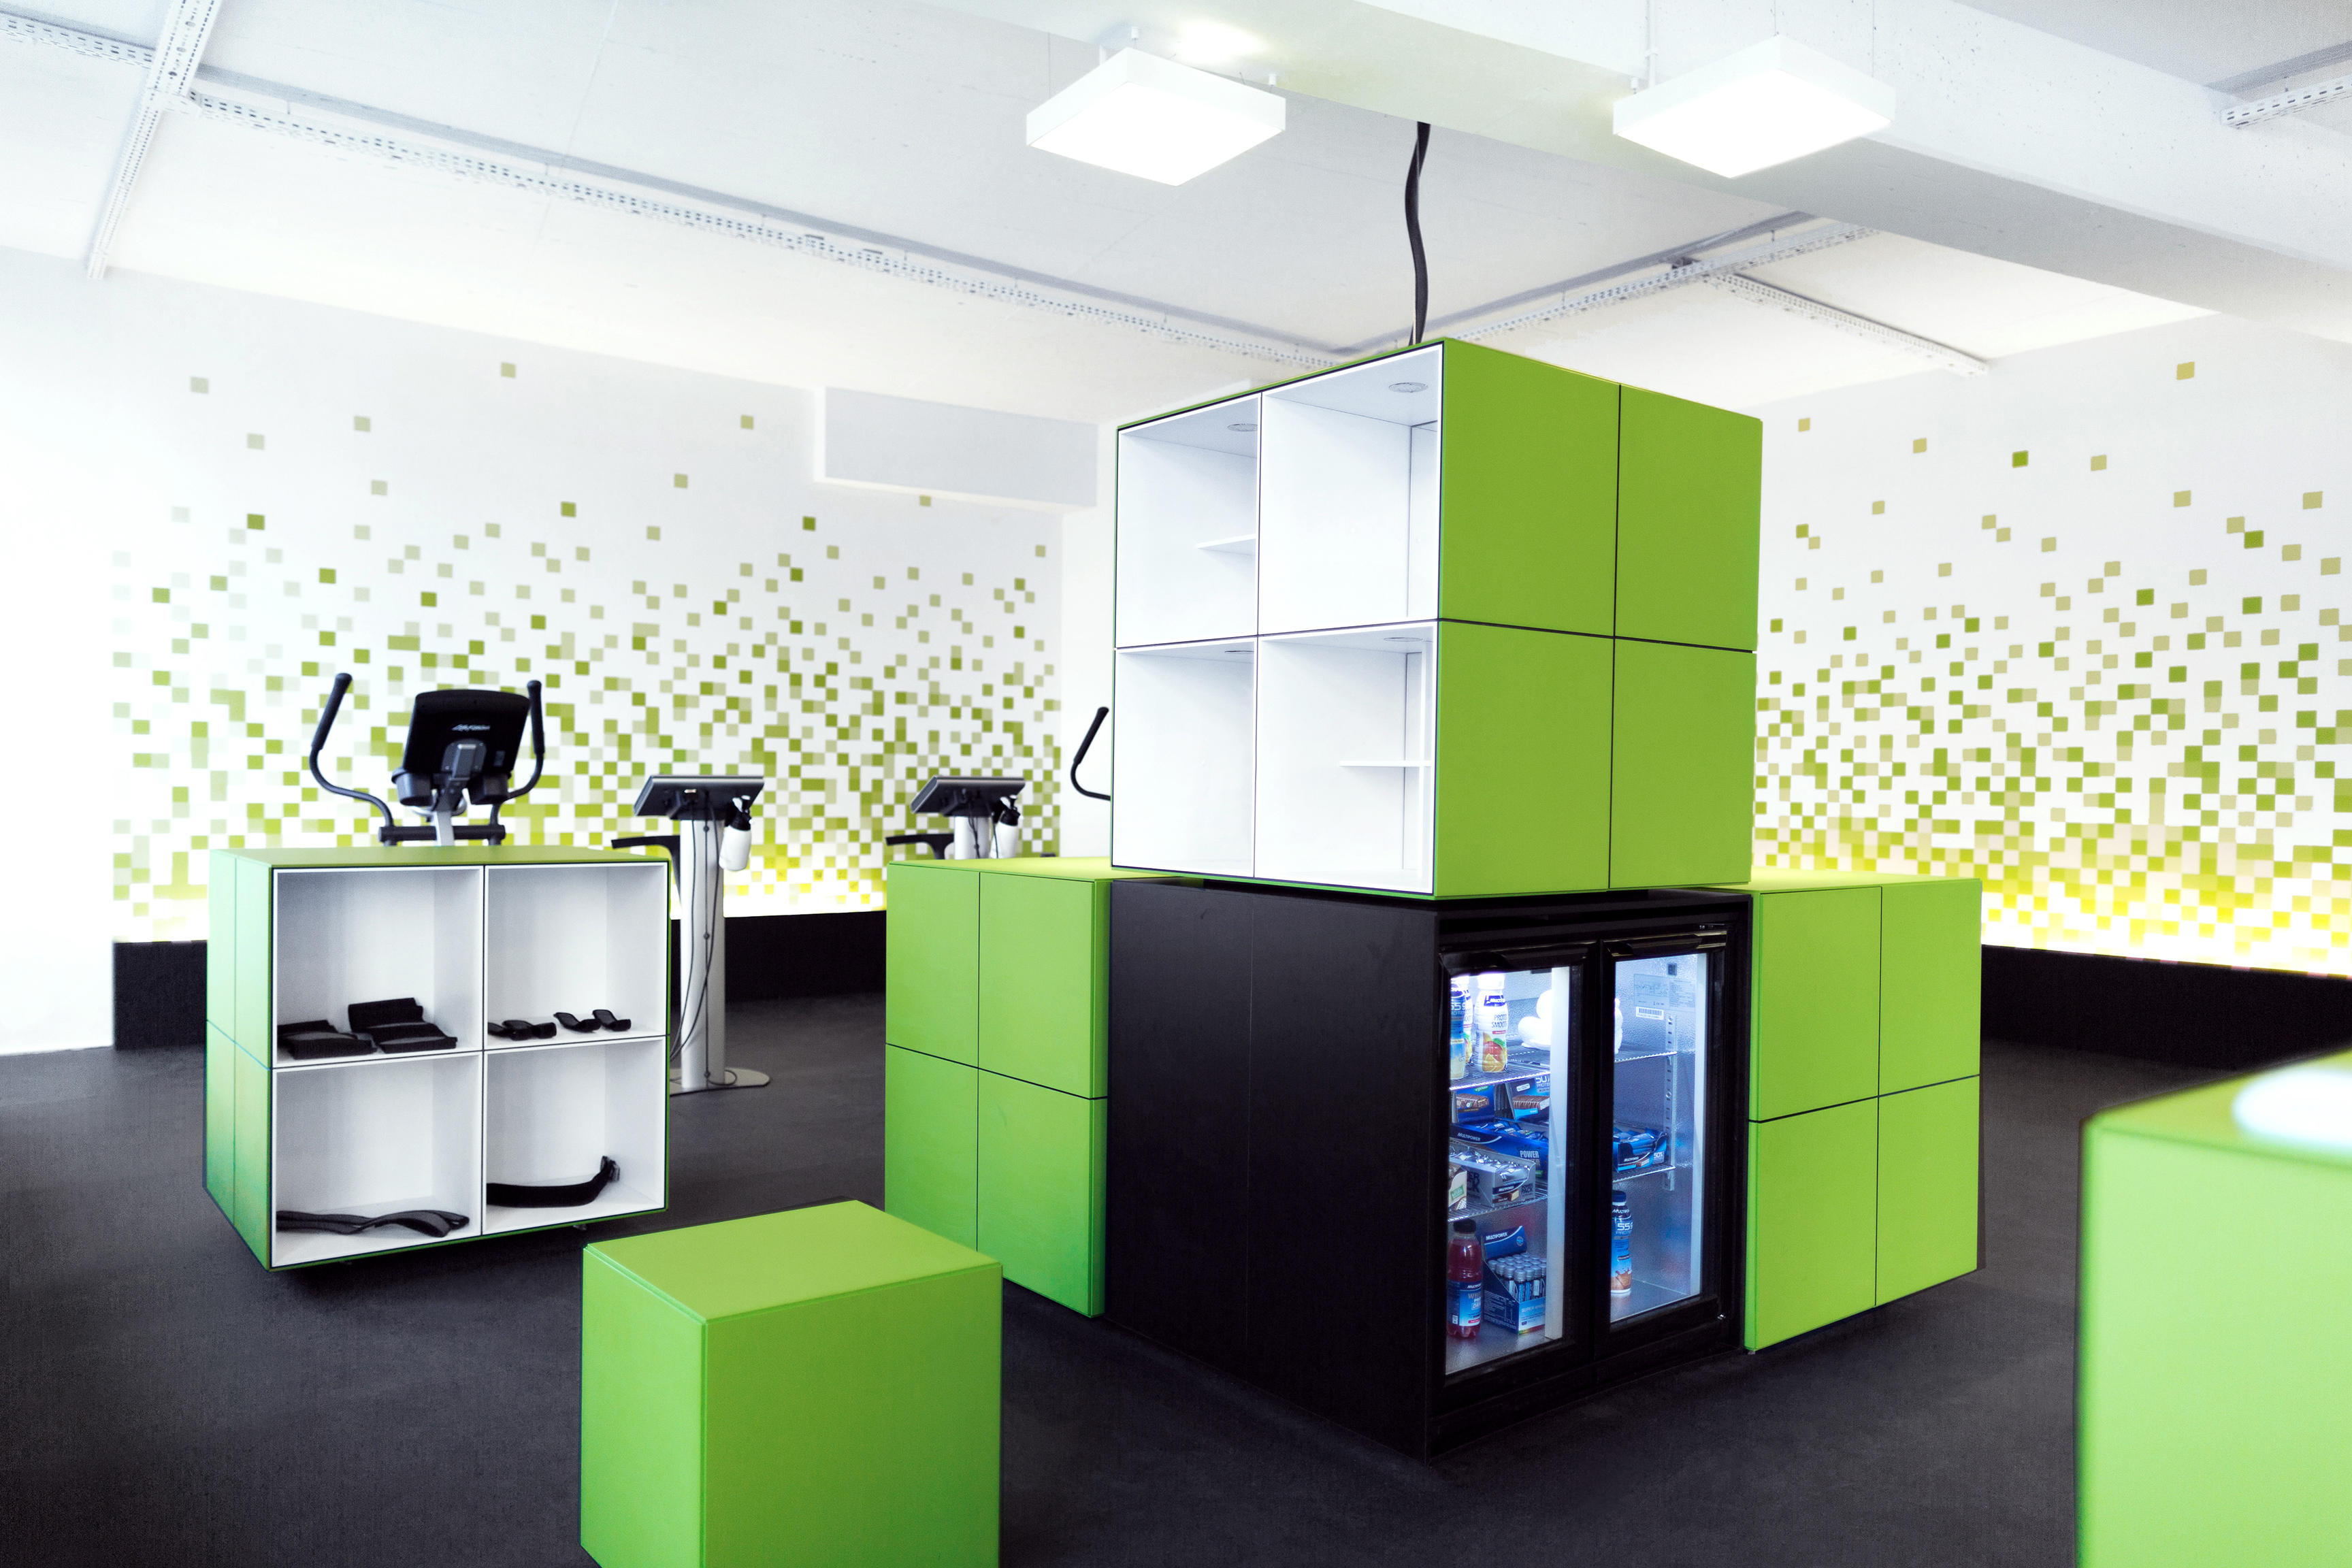 ems fitnessstudio fitbox berlin kollwitzplatz in berlin branchenbuch deutschland. Black Bedroom Furniture Sets. Home Design Ideas